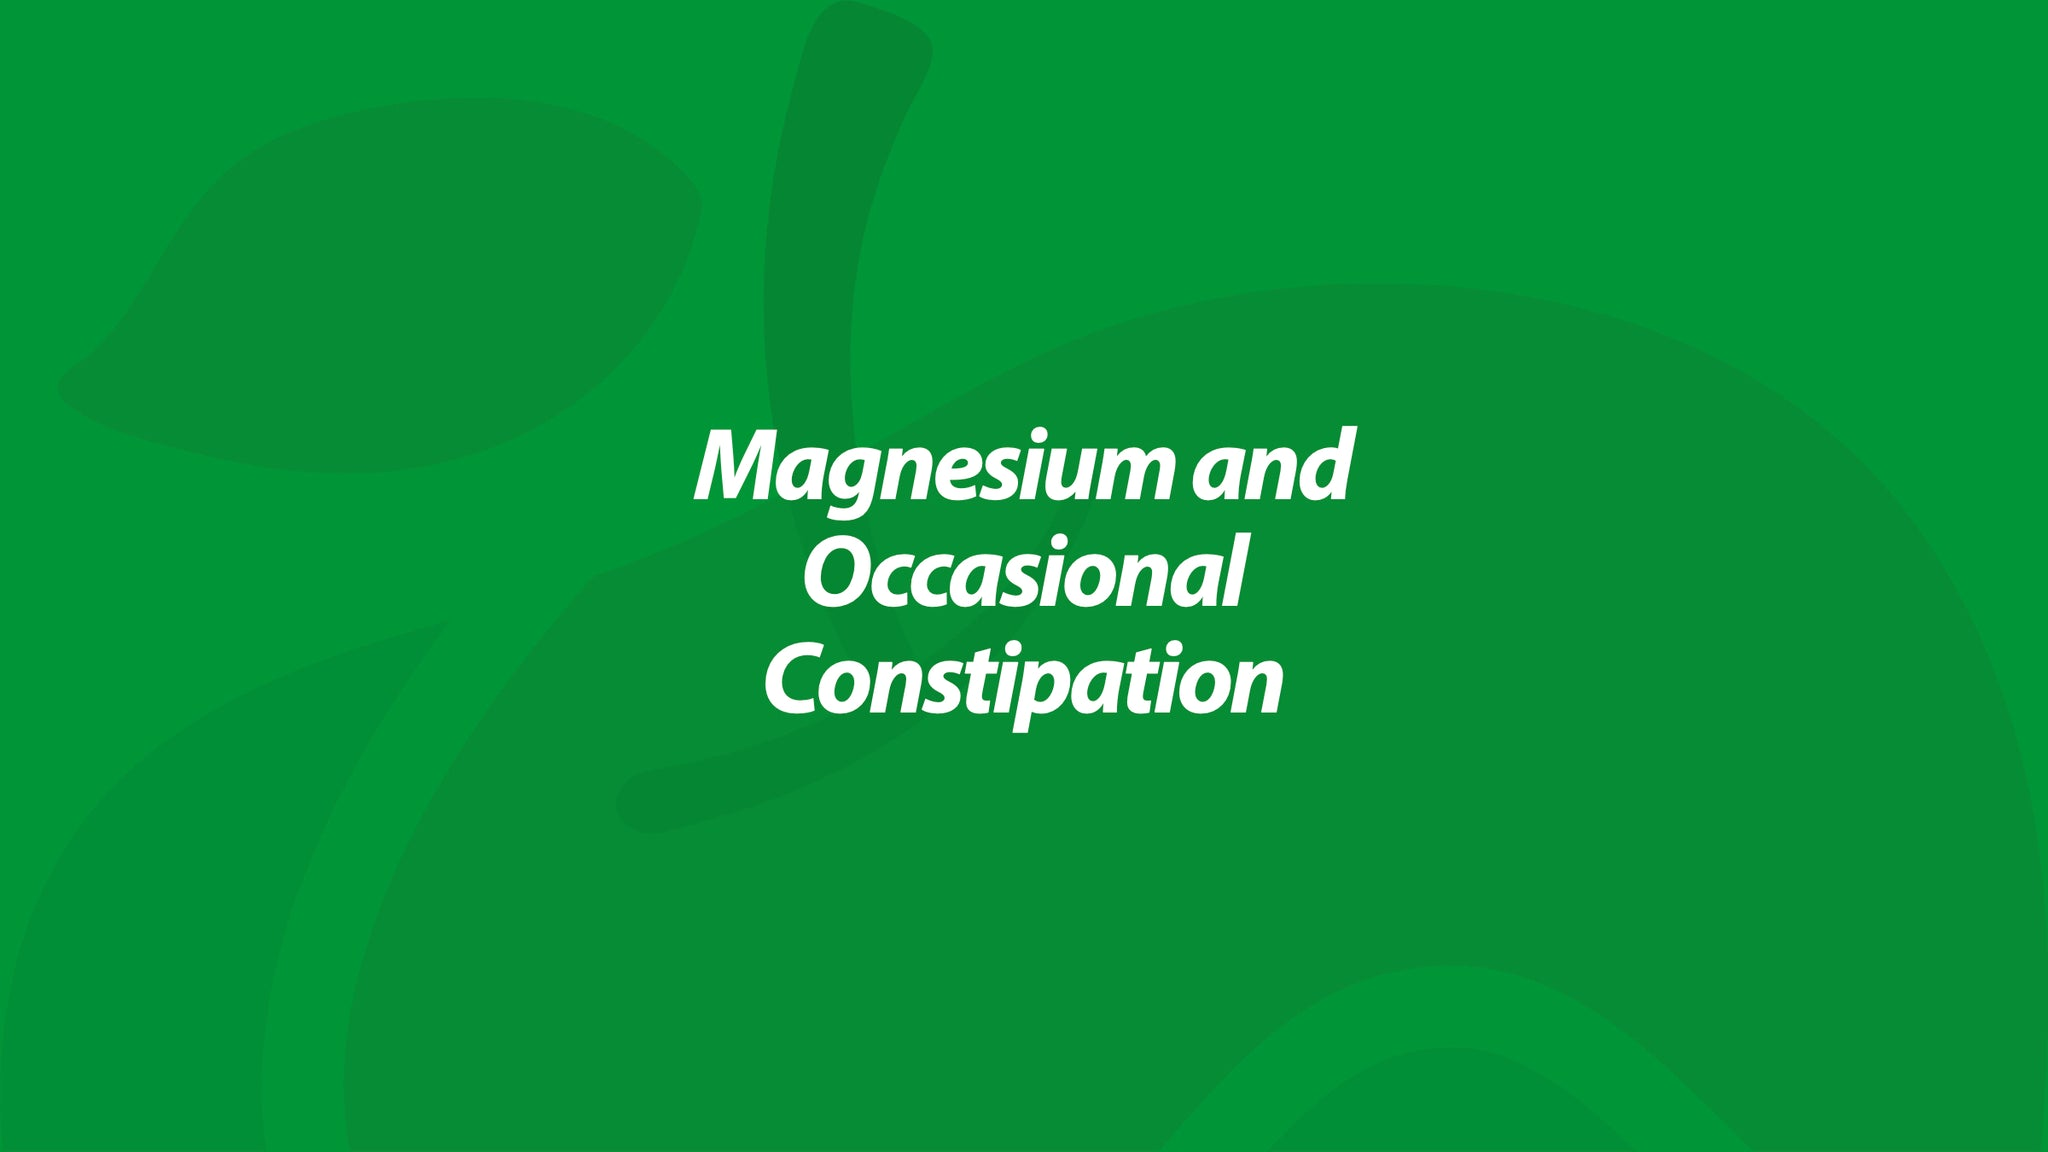 Magnesium and Occasional Constipation